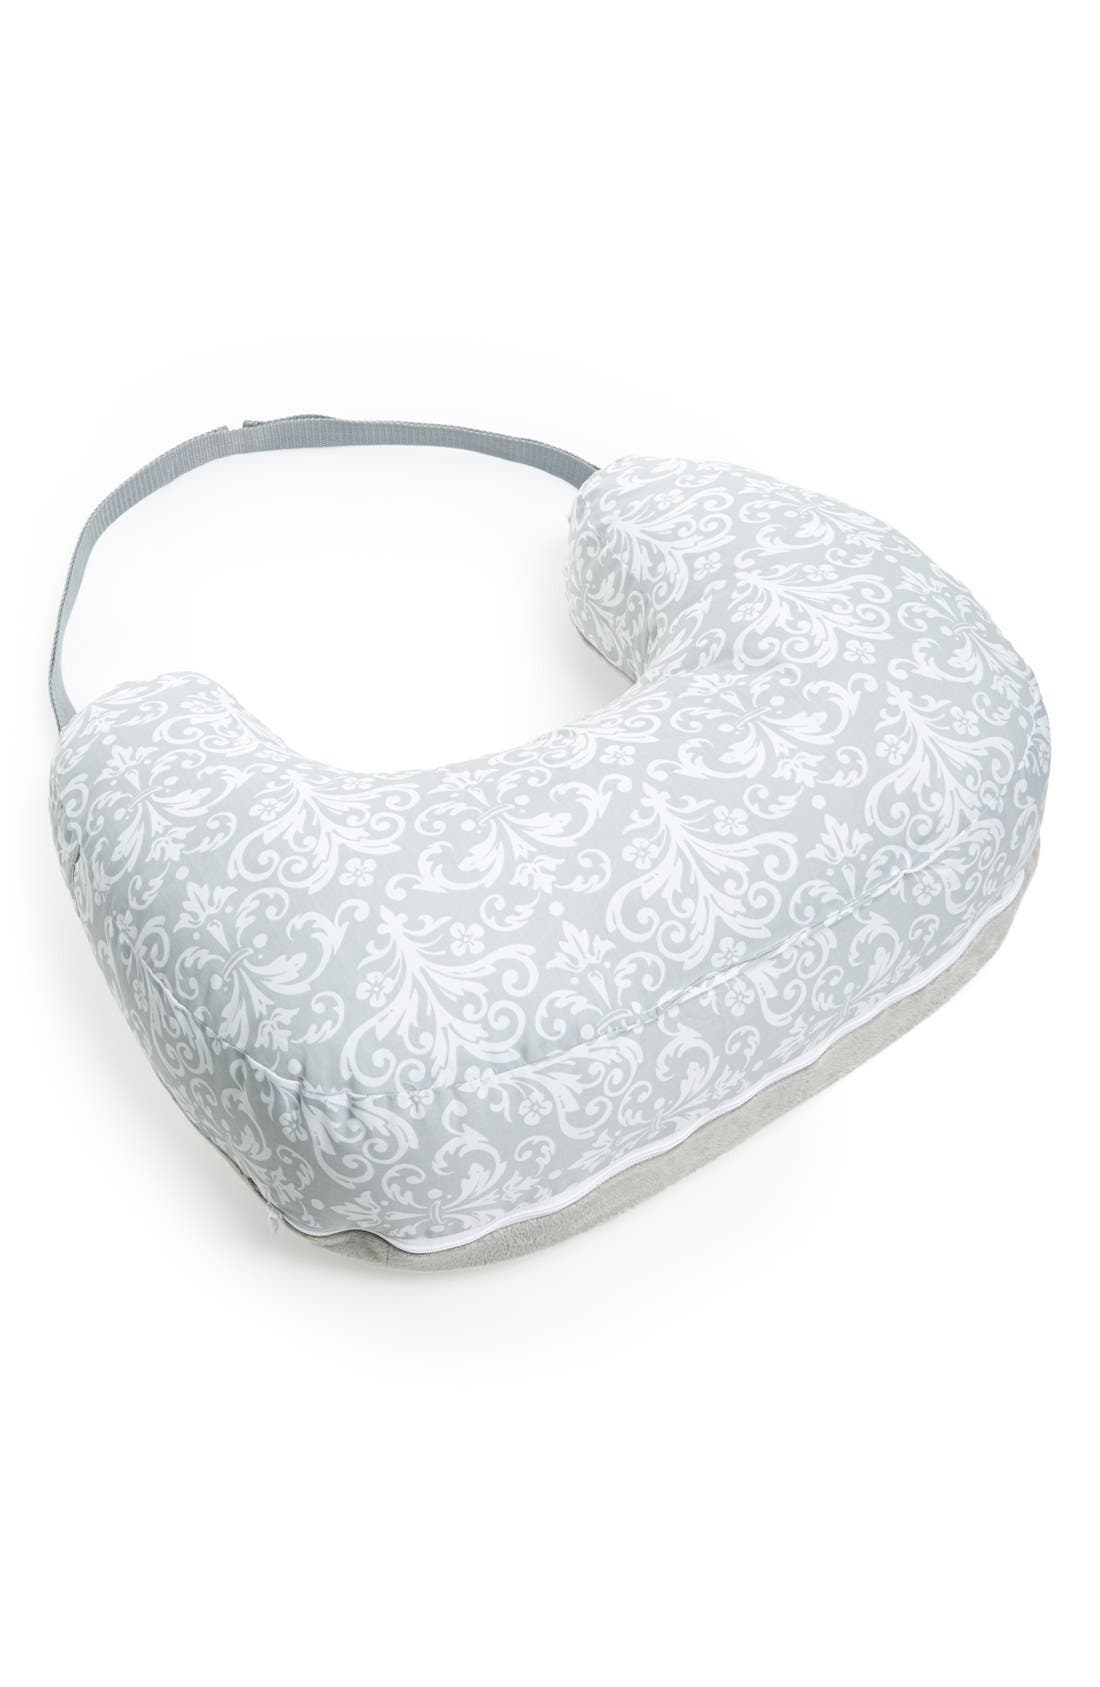 Two Sided Breastfeeding Pillow & Slipcover,                         Main,                         color, KENSINGTON GREY